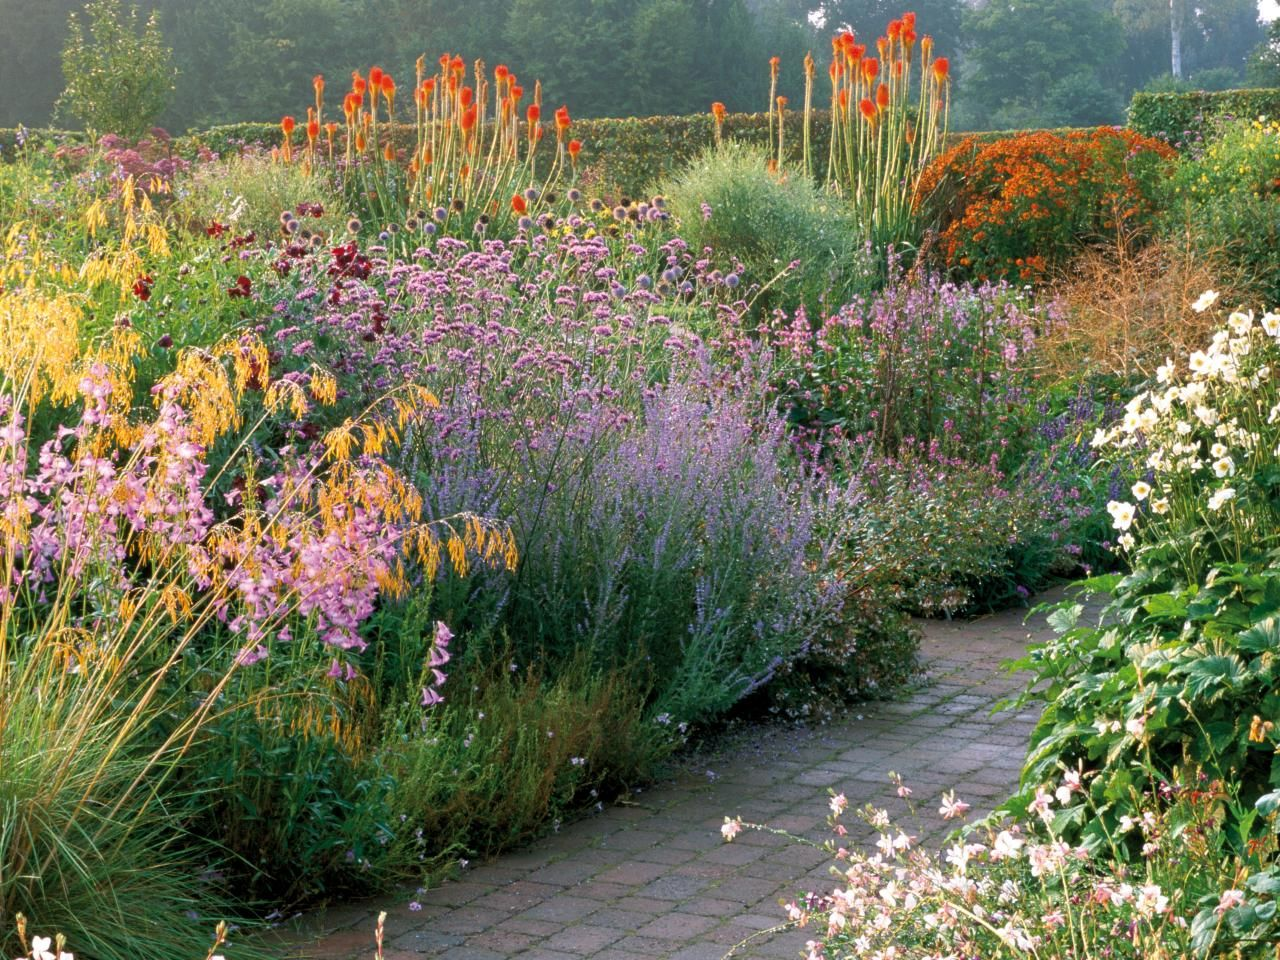 English country garden paintings - English Country Garden Paintings English Country Garden Paintings The Perennial Beds In A French Country